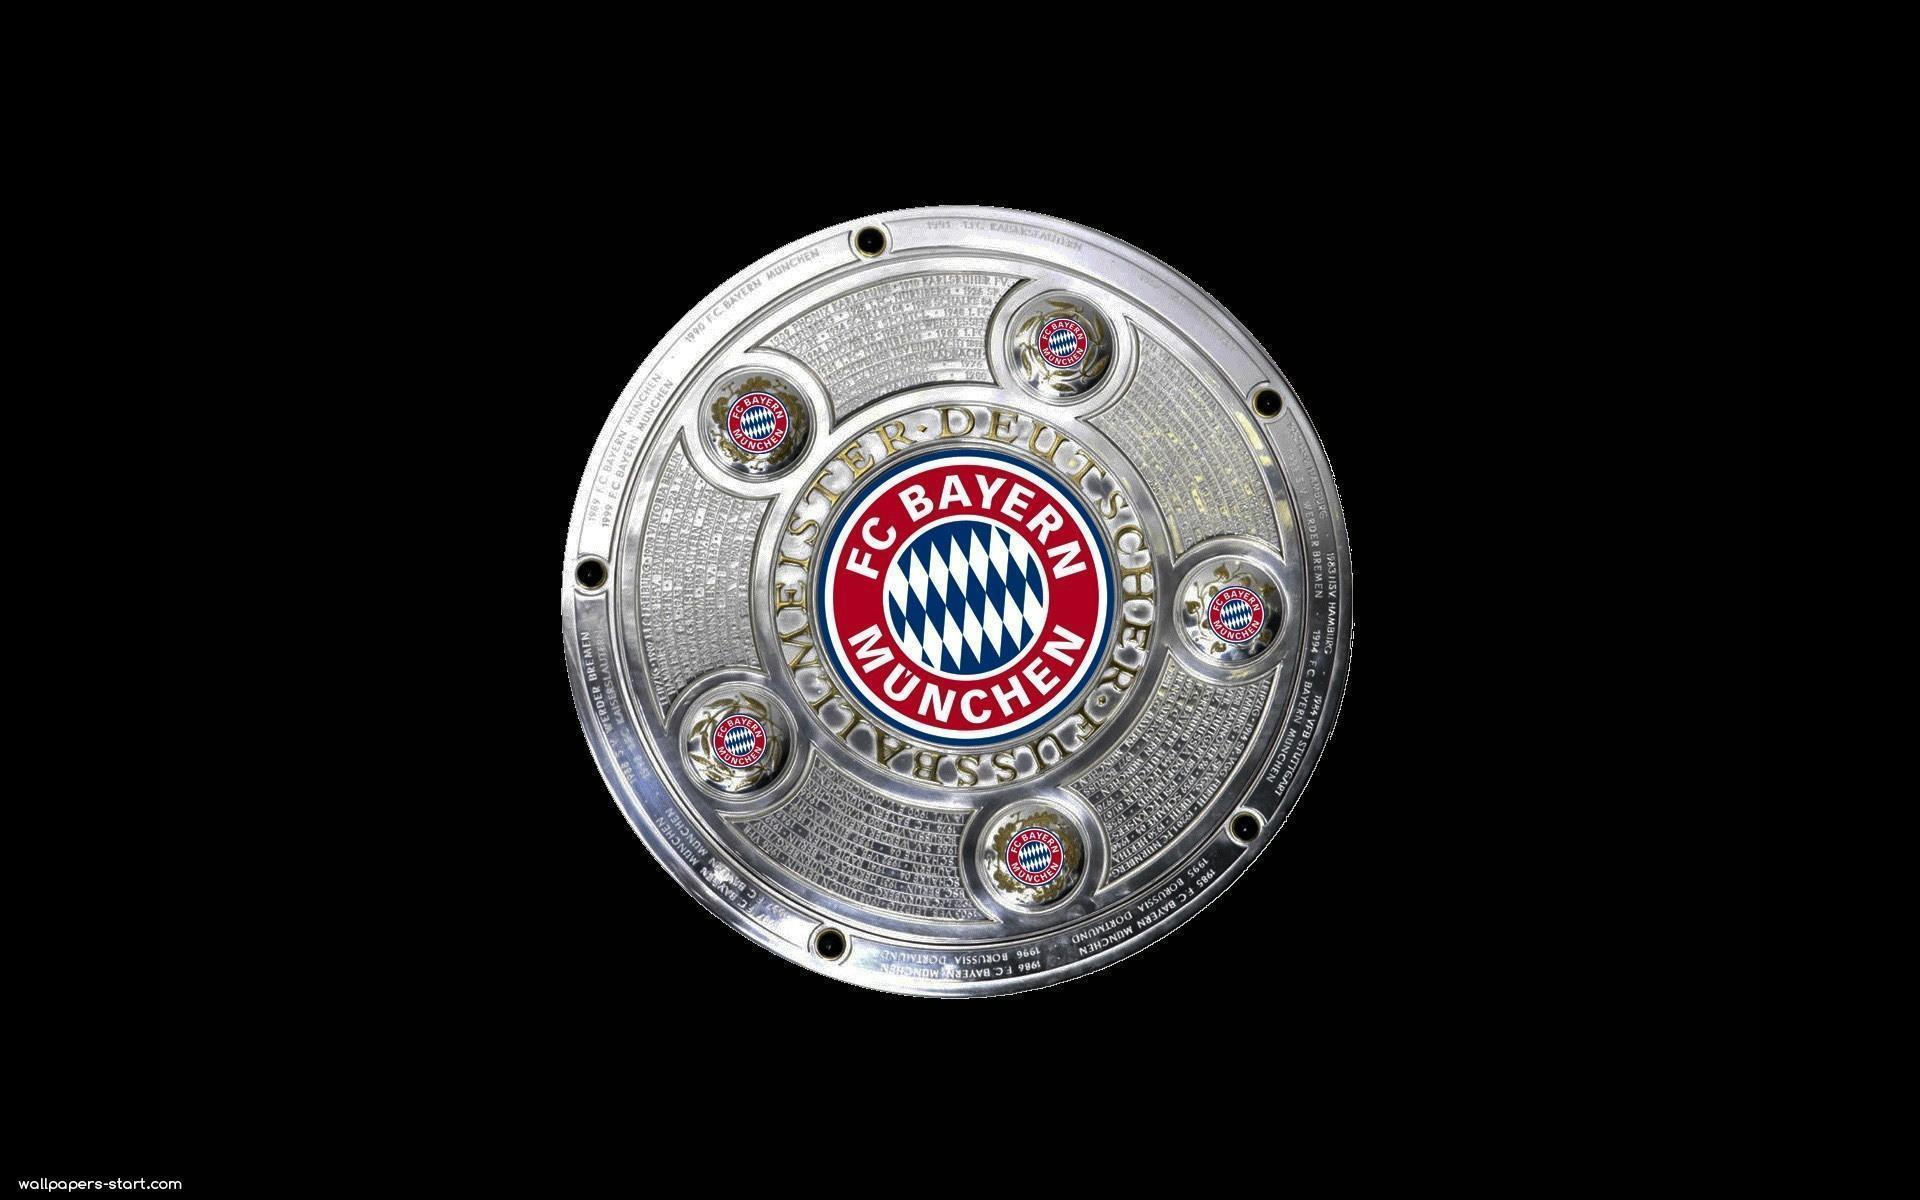 Free Download Fc Bayern Munich Hd Wallpapers 1920x1200 For Your Desktop Mobile Tablet Explore 77 Fc Bayern Munich Hd Wallpapers Bayern Munich Logo Wallpaper Bayern Munich Iphone Wallpaper Bayern